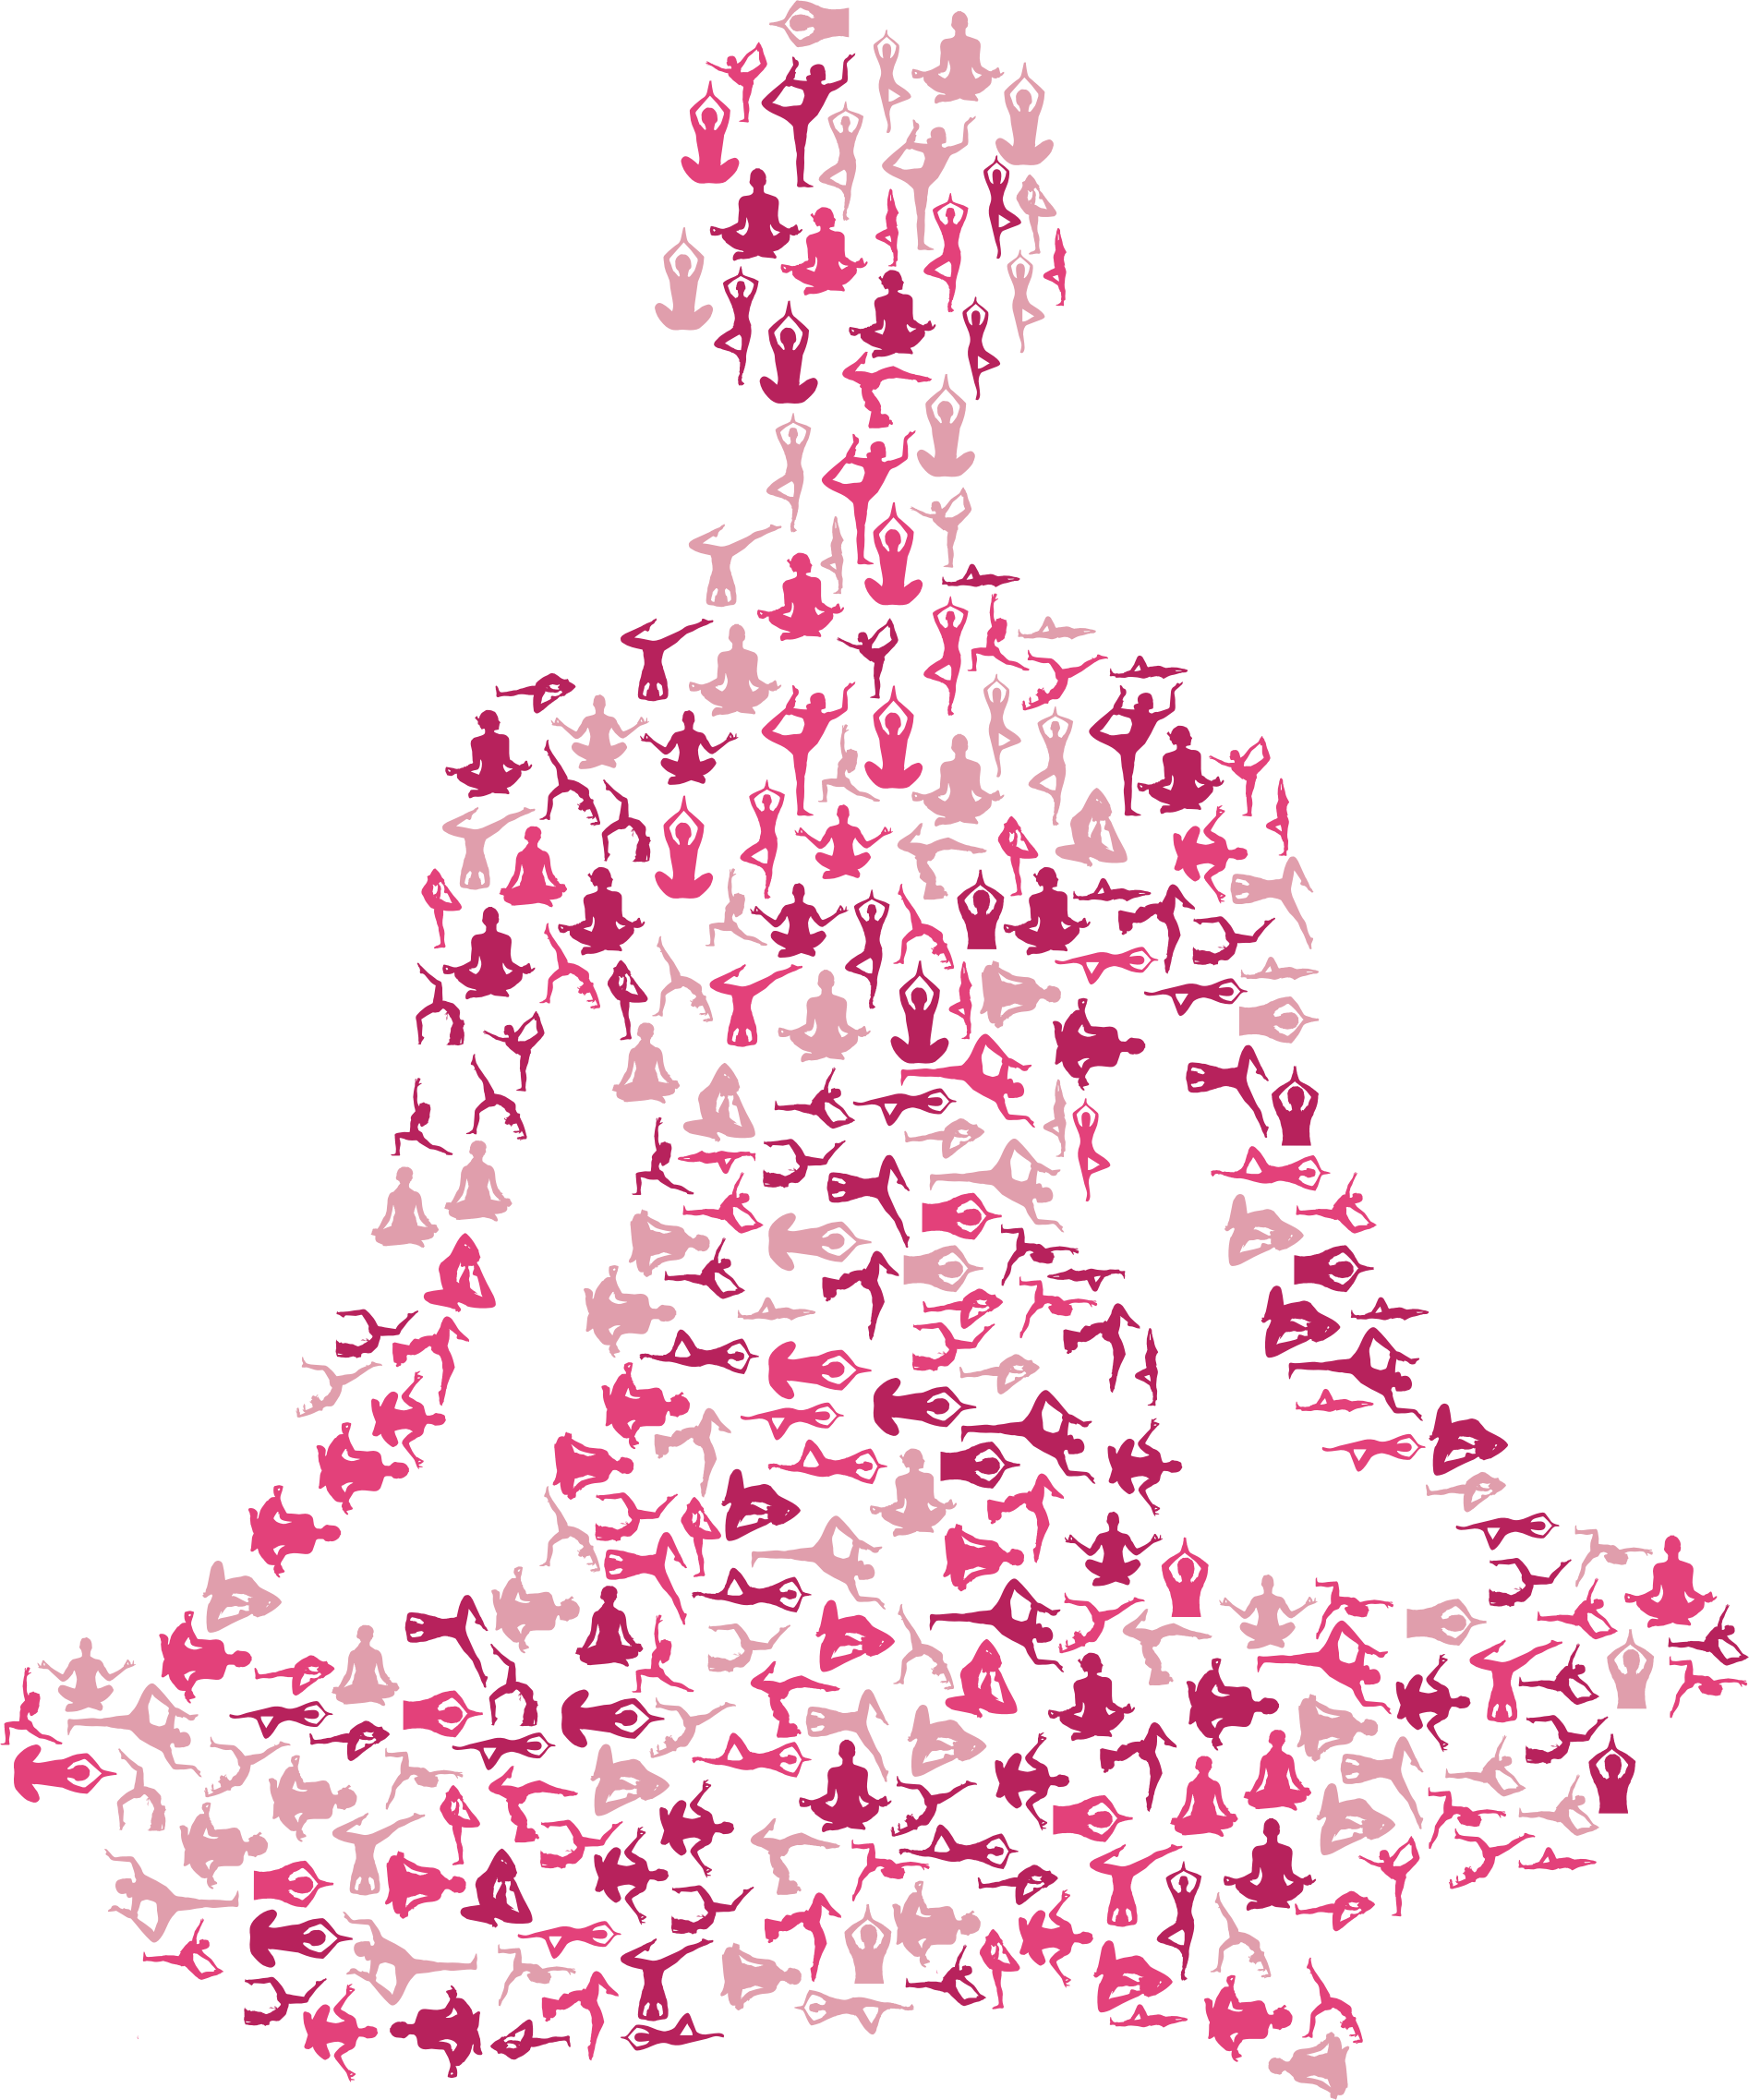 Female Yoga Pose Silhouette Fractal Variation 2 No Background by GDJ